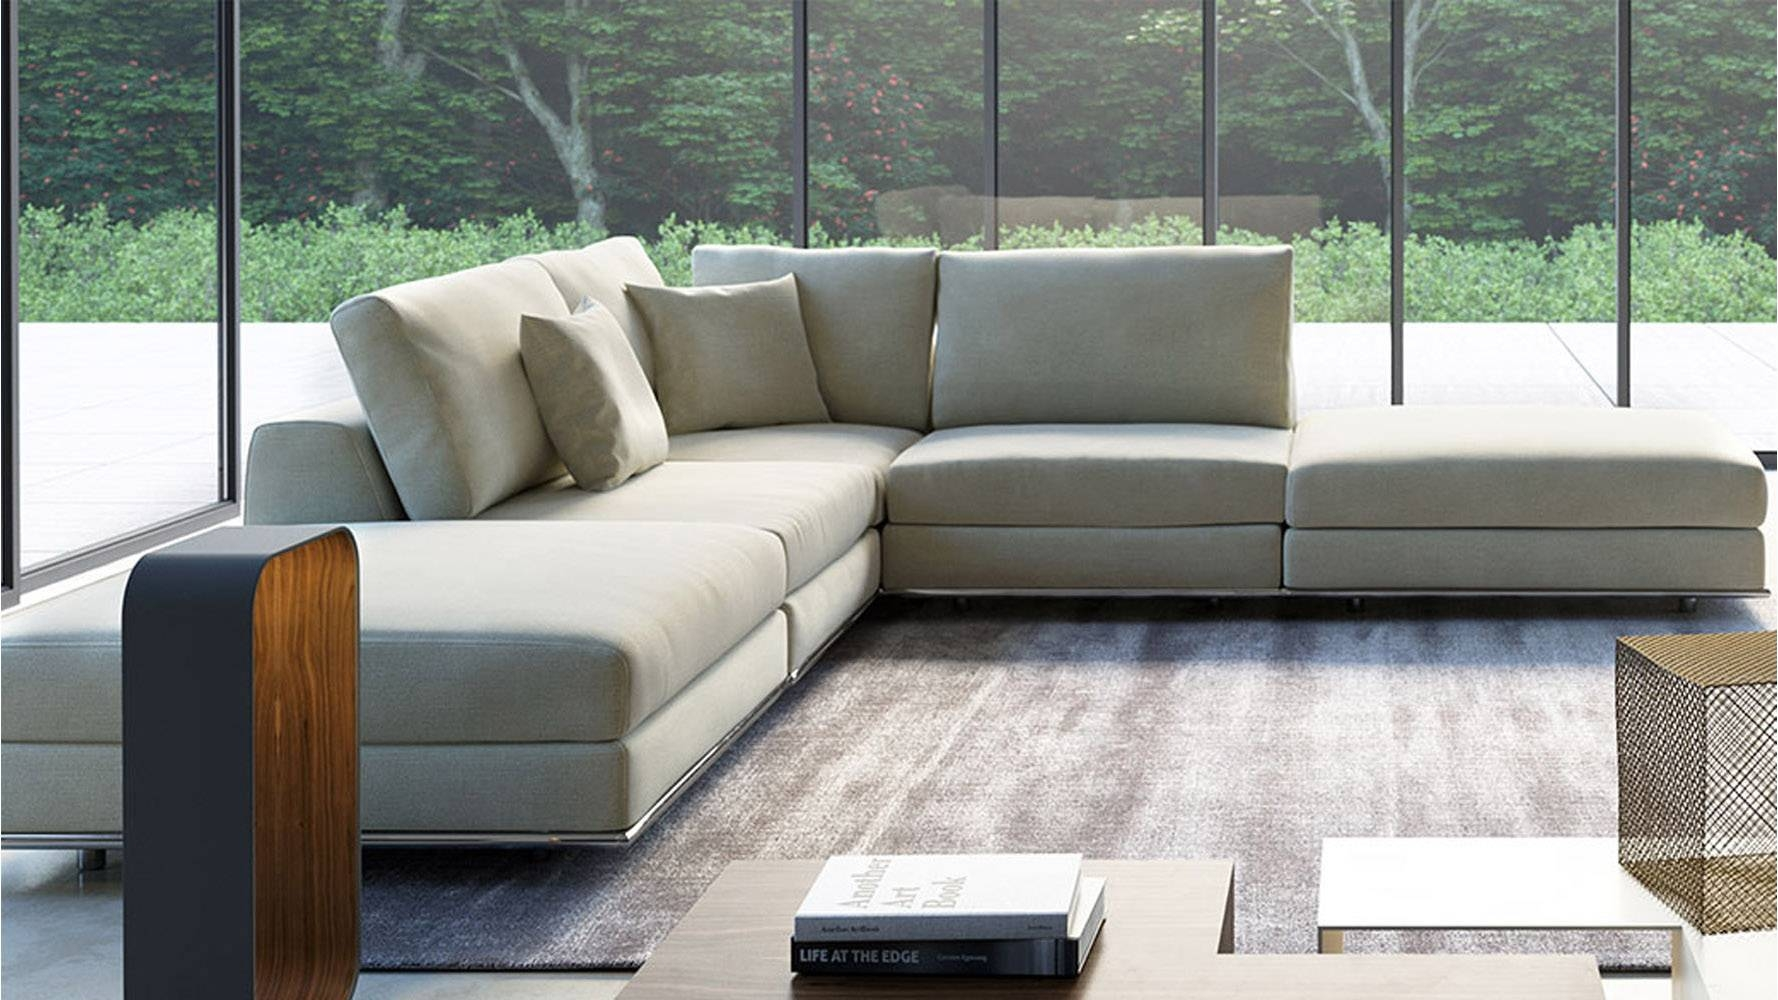 Modern Persis Armless Corner Sectional Sofa - Moonbeam | Zuri within Armless Sectional Sofas (Image 17 of 30)